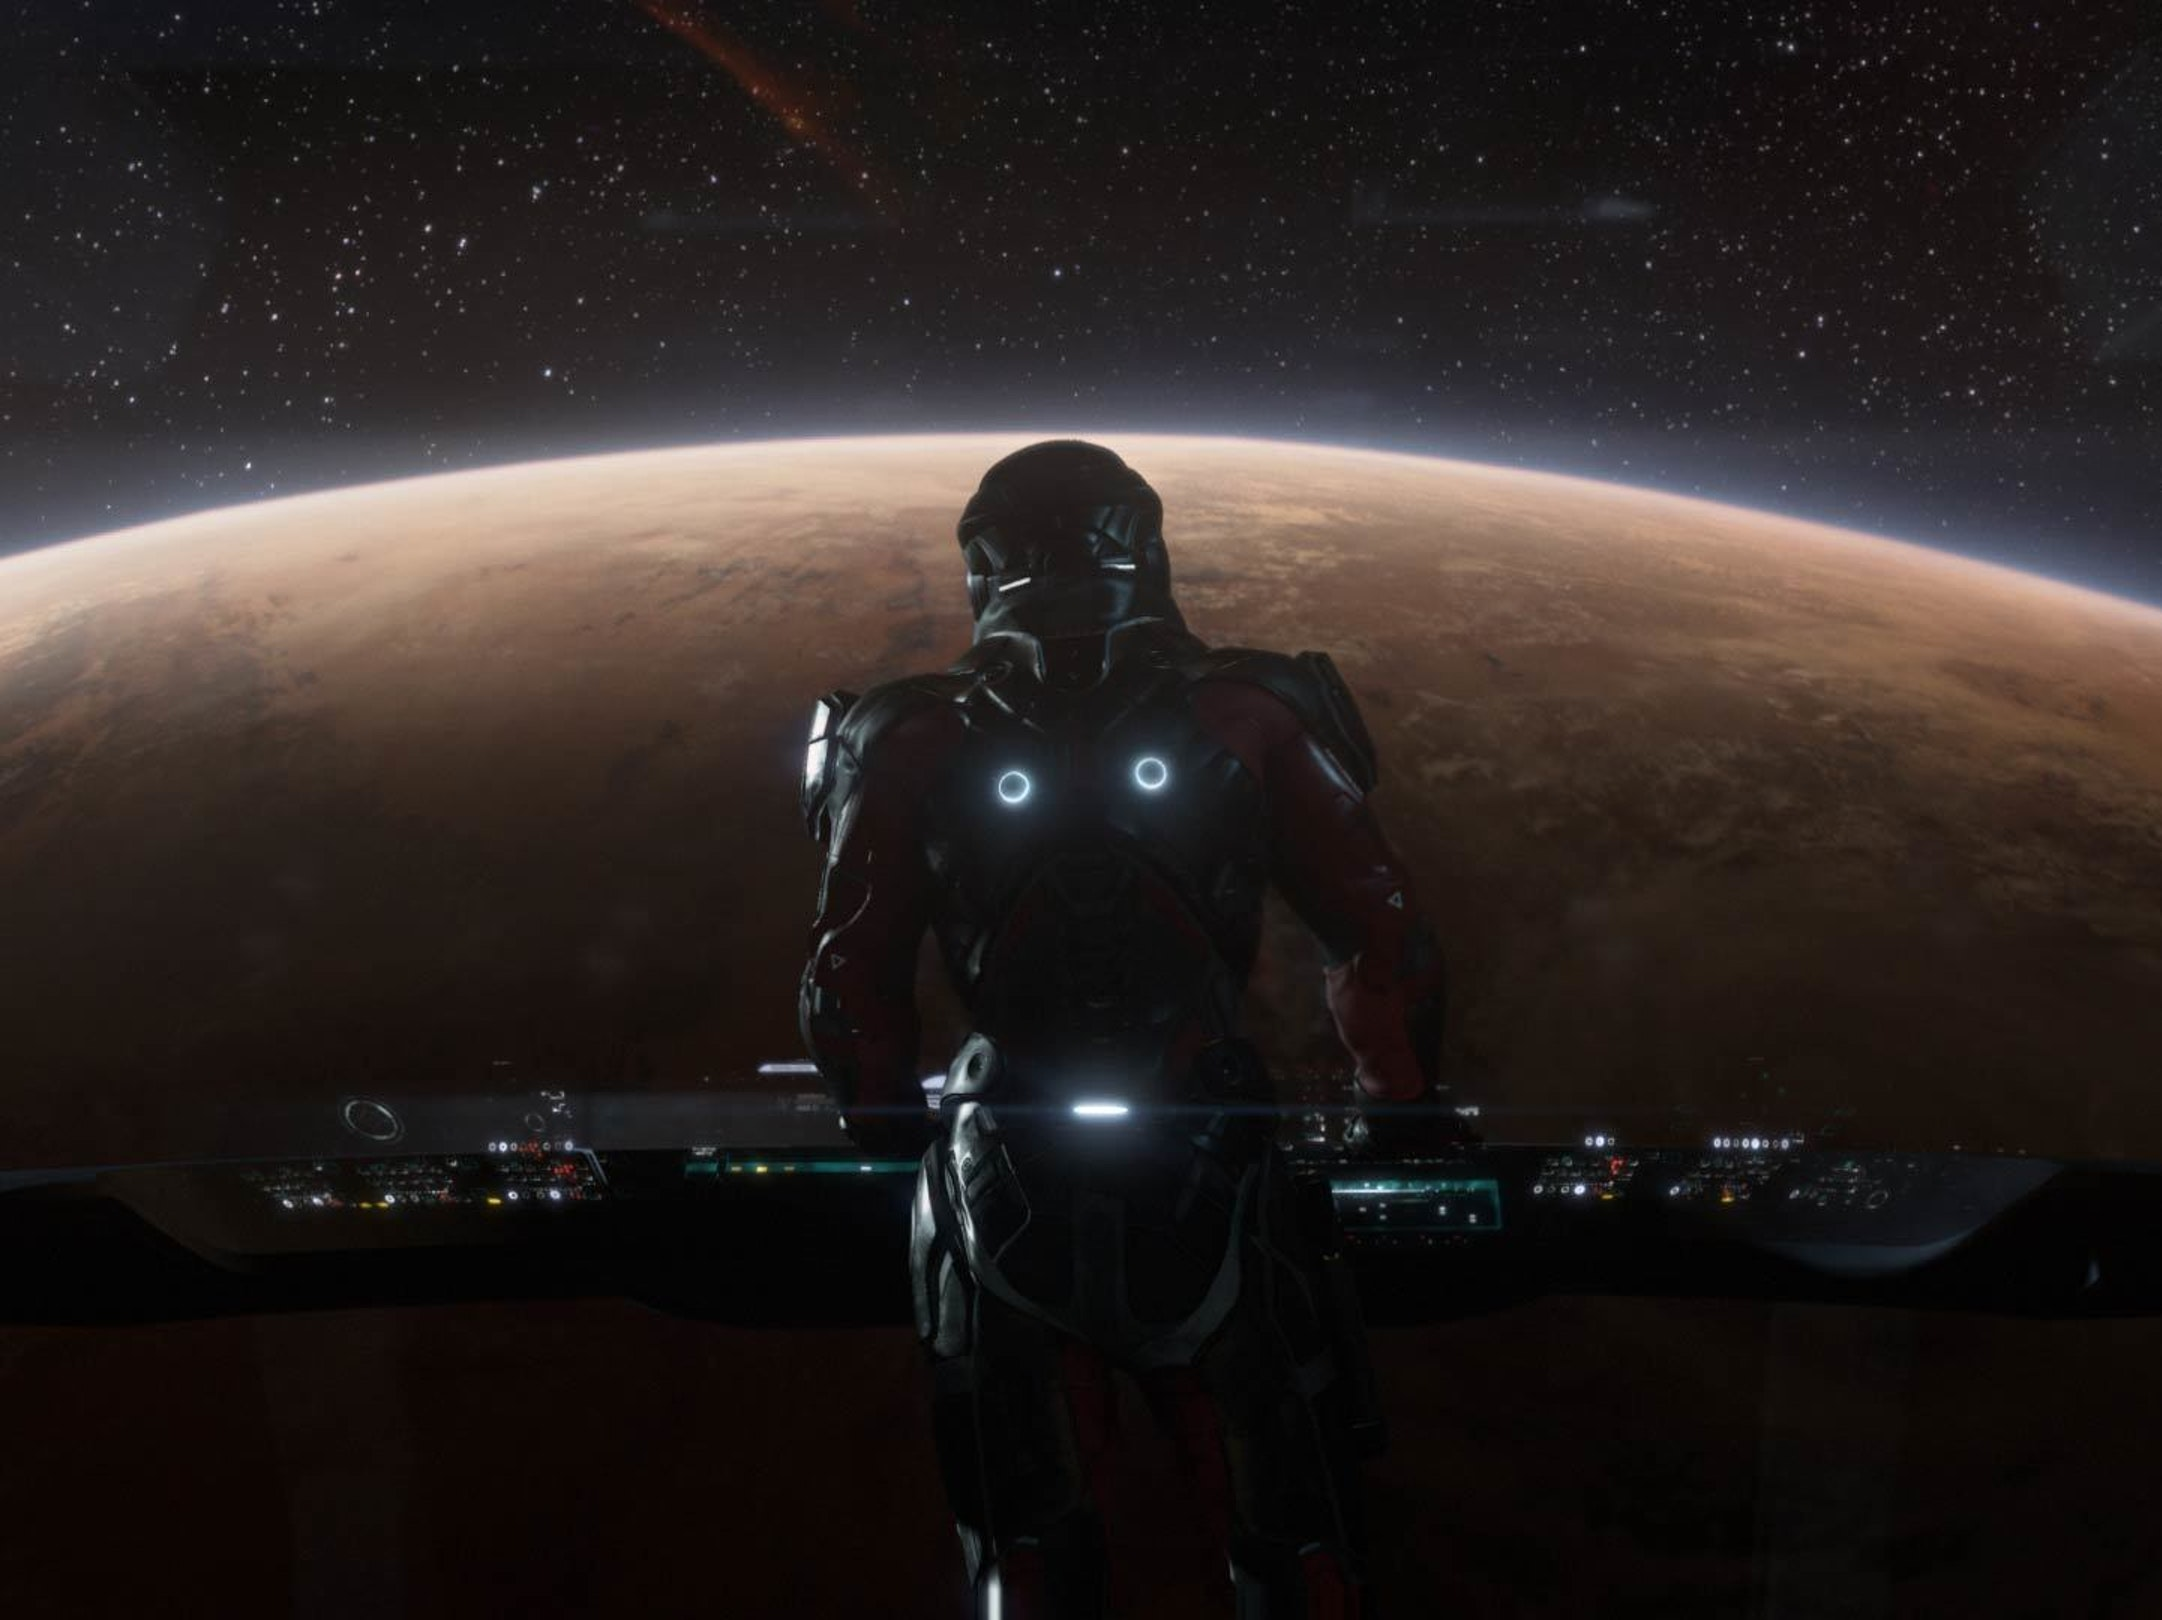 'No Man's Sky,' 'Mass Effect Andromeda,' 'Uncharted 4' and Other Games We Can't Wait to Play in 2016